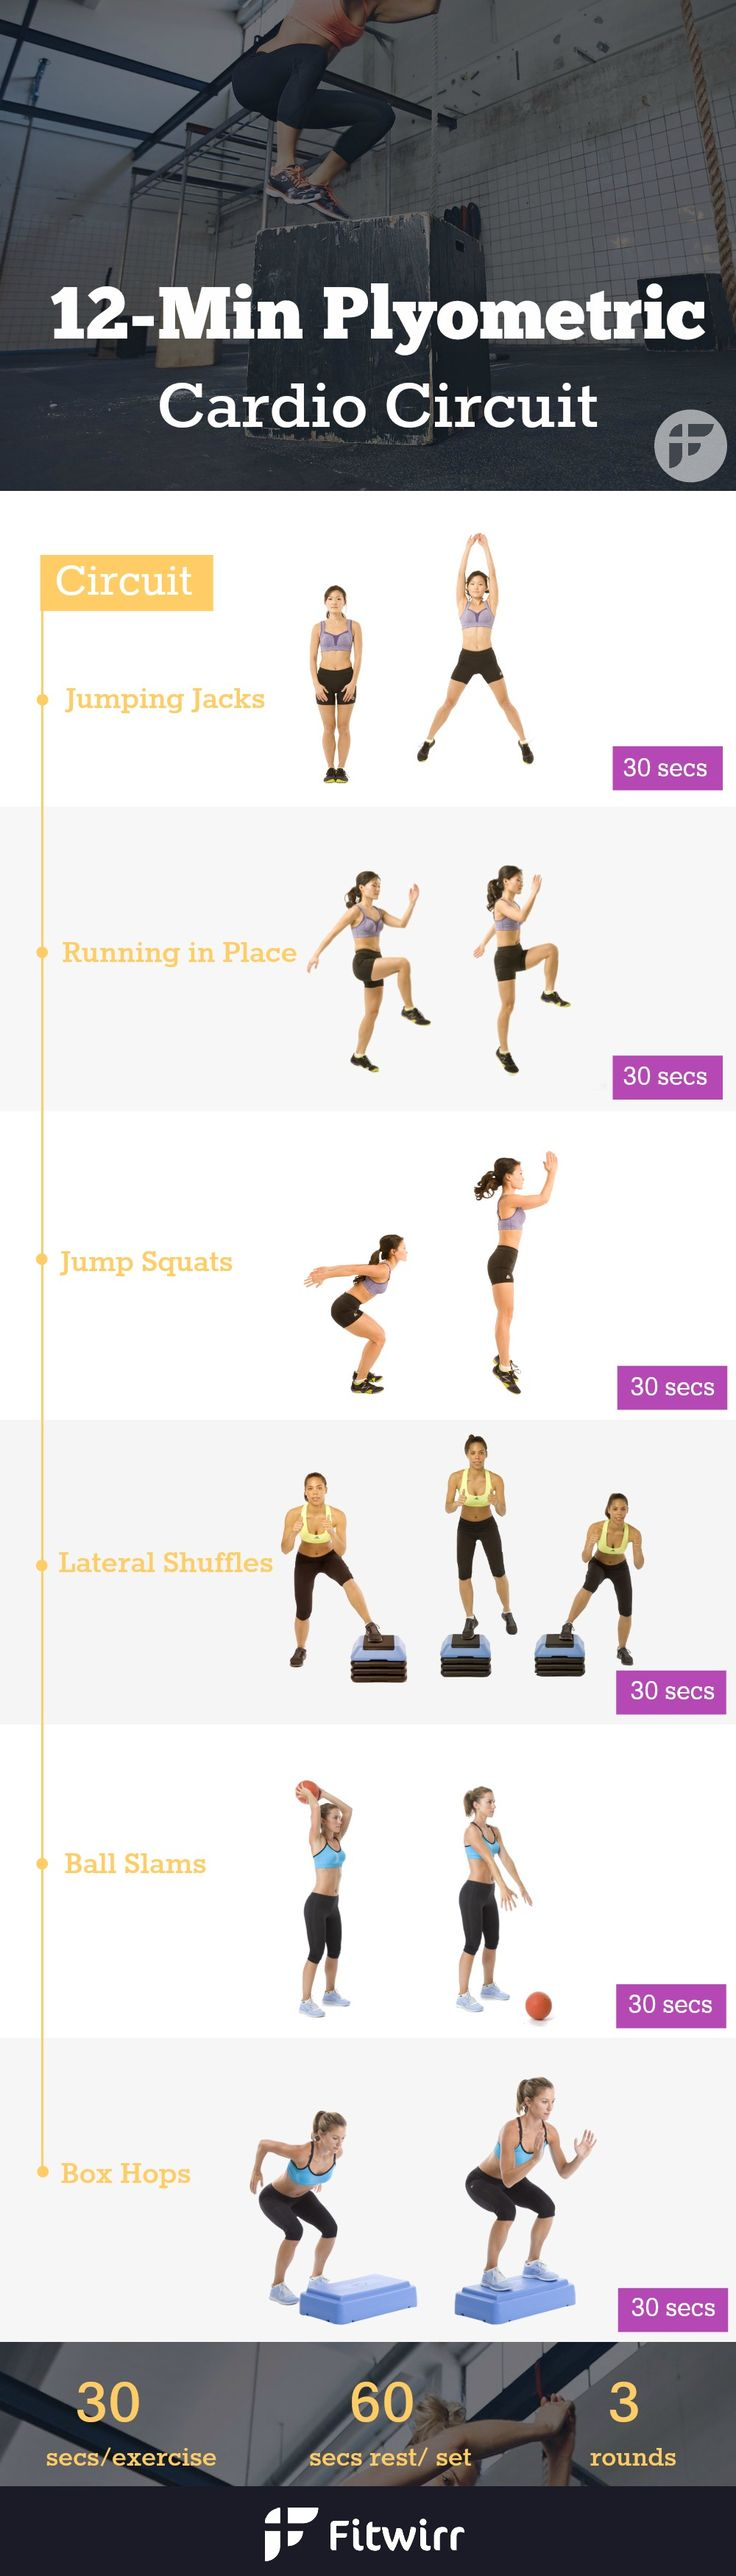 12-Minute Plyometric Cardio Circuit to torch calories and lose fat.